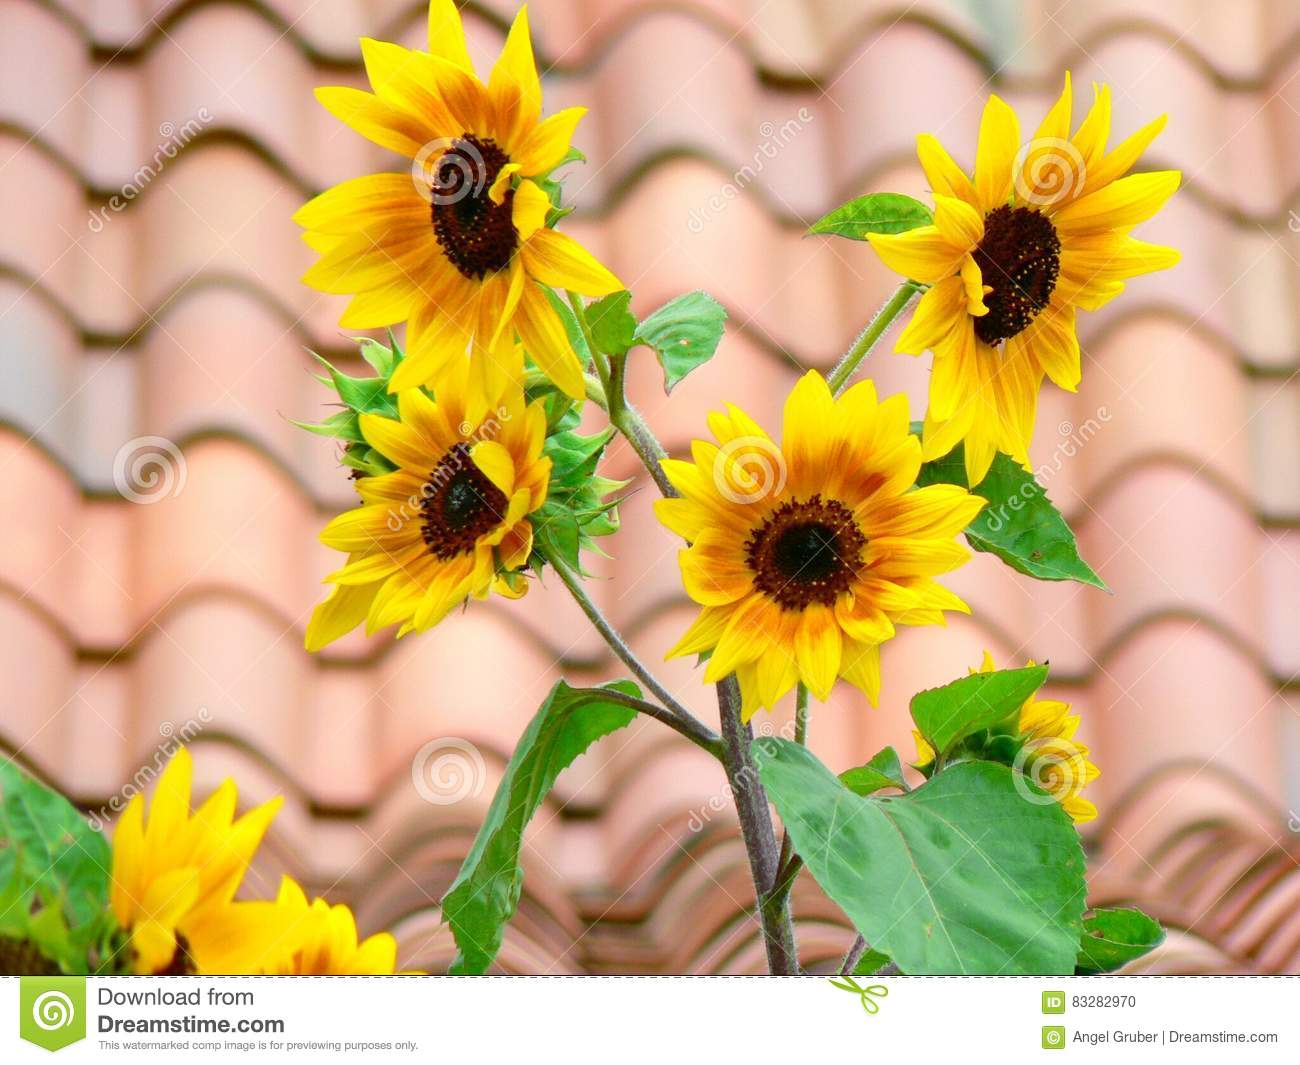 Closeup of sunflowers